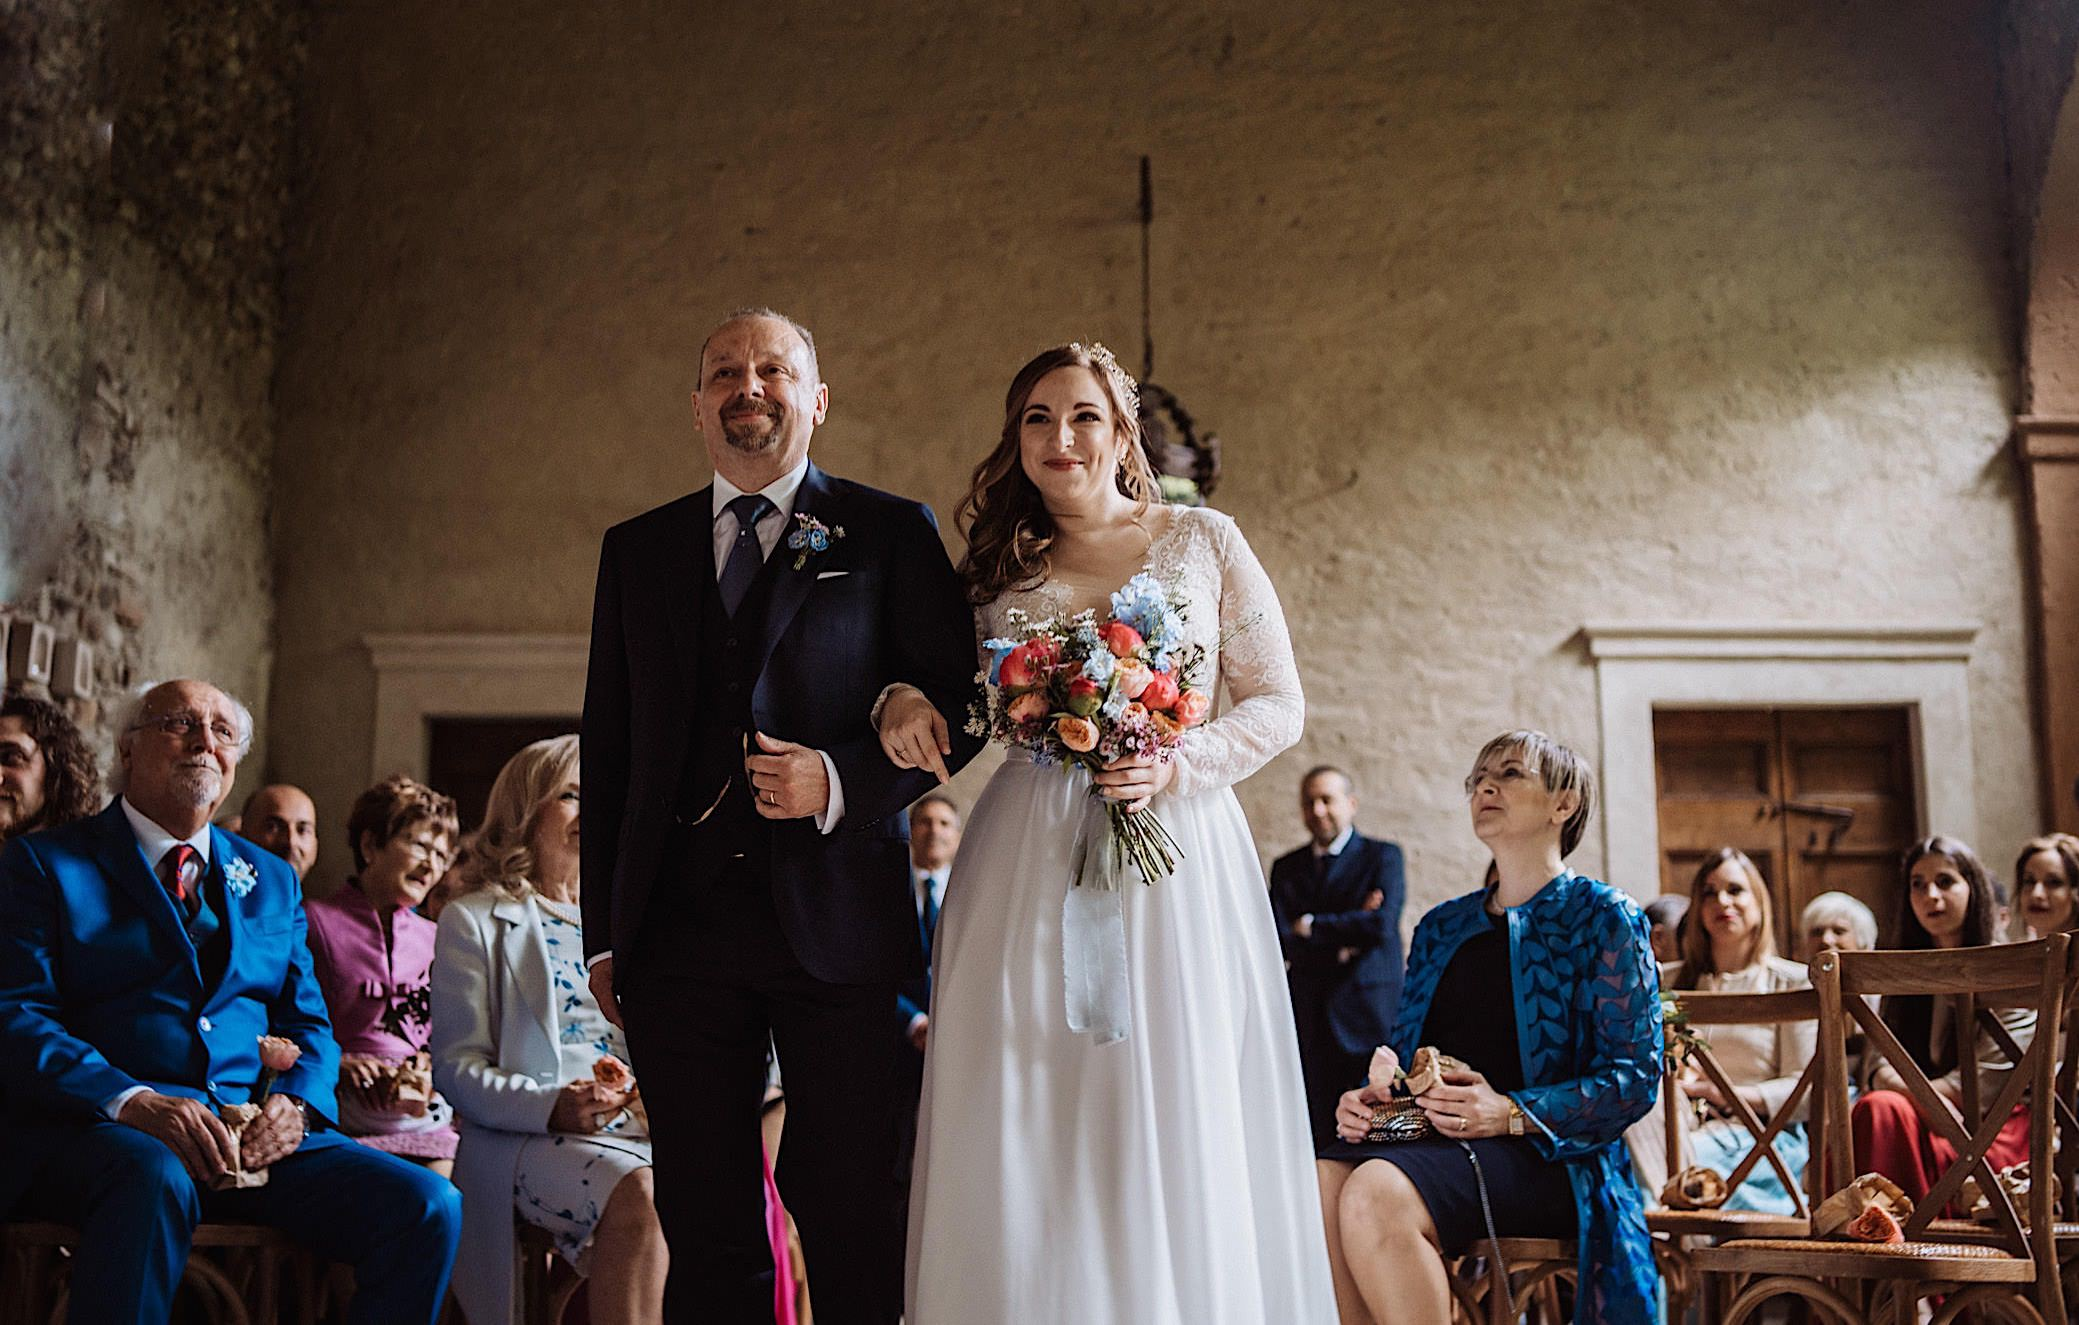 wedding ceremony at convento dell annunciata wedding photography